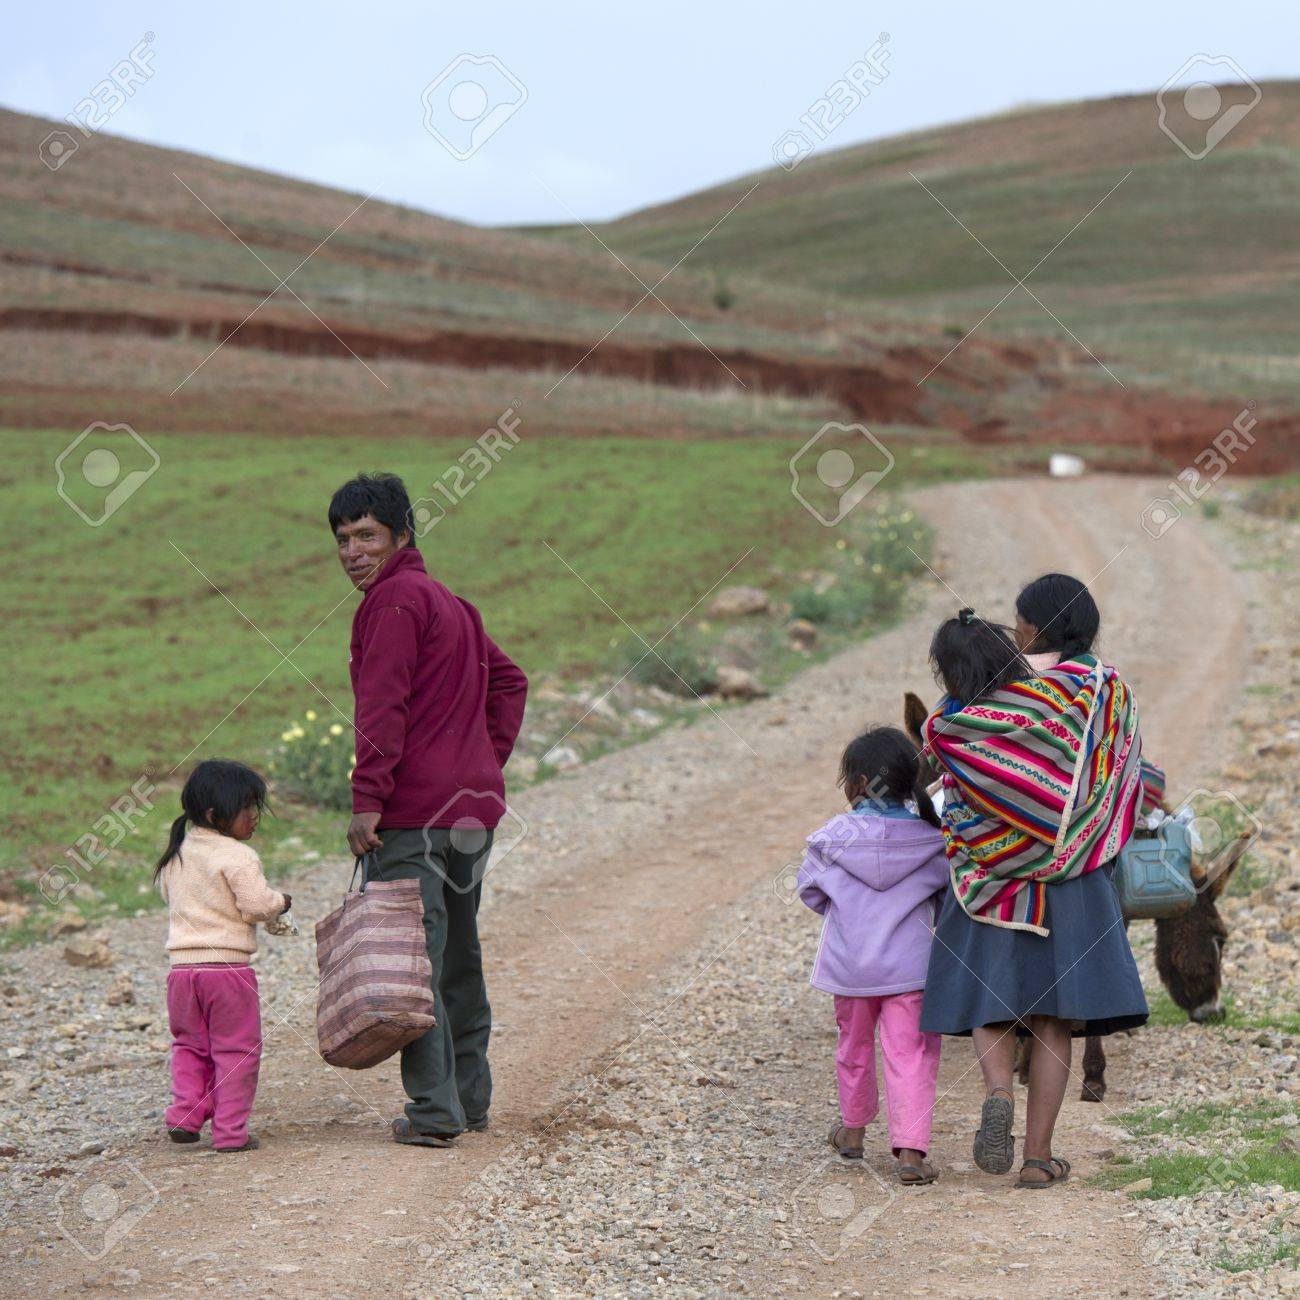 Family walking in a field with mule, Sacred Valley, Cusco Region, Peru Stock Photo - 17227833